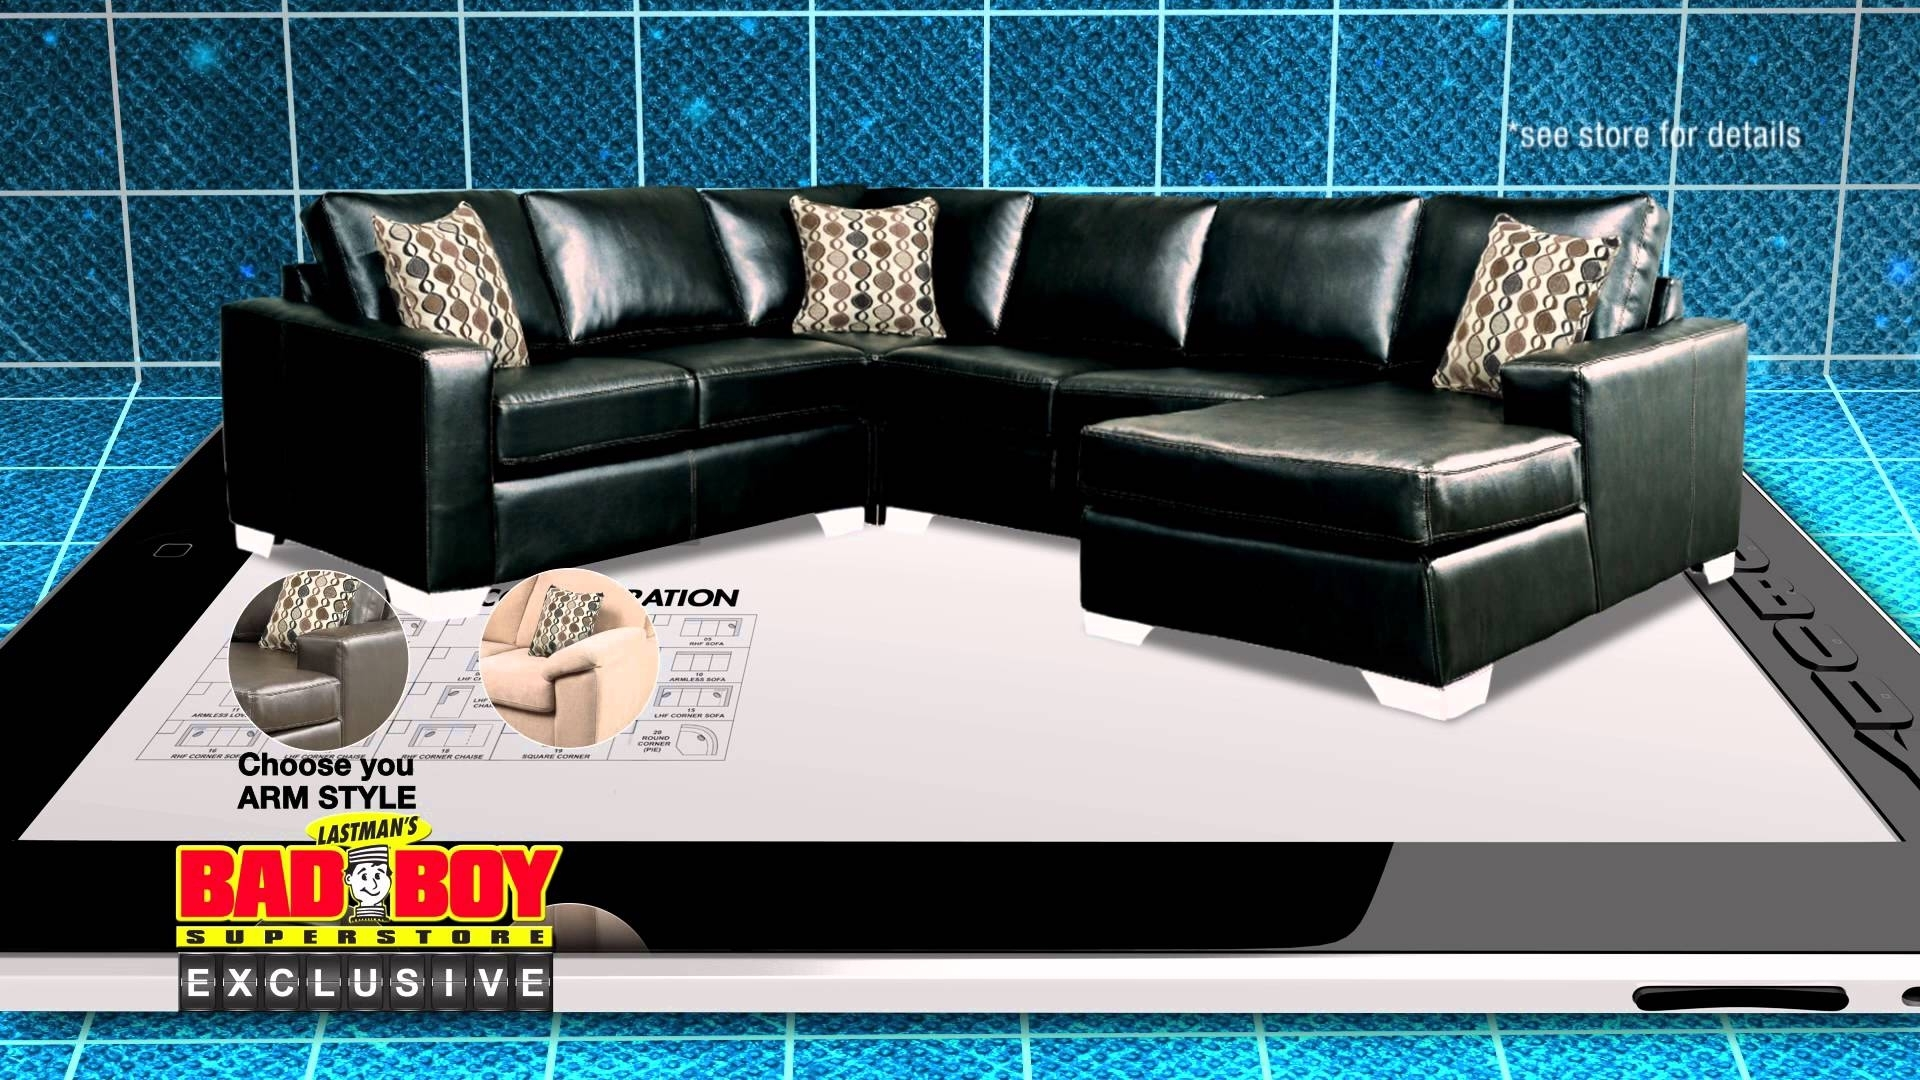 Have It Your Way, Customize Your Sofa At Lastman's Bad Boy – Youtube Within Sectional Sofas At Bad Boy (Image 9 of 10)